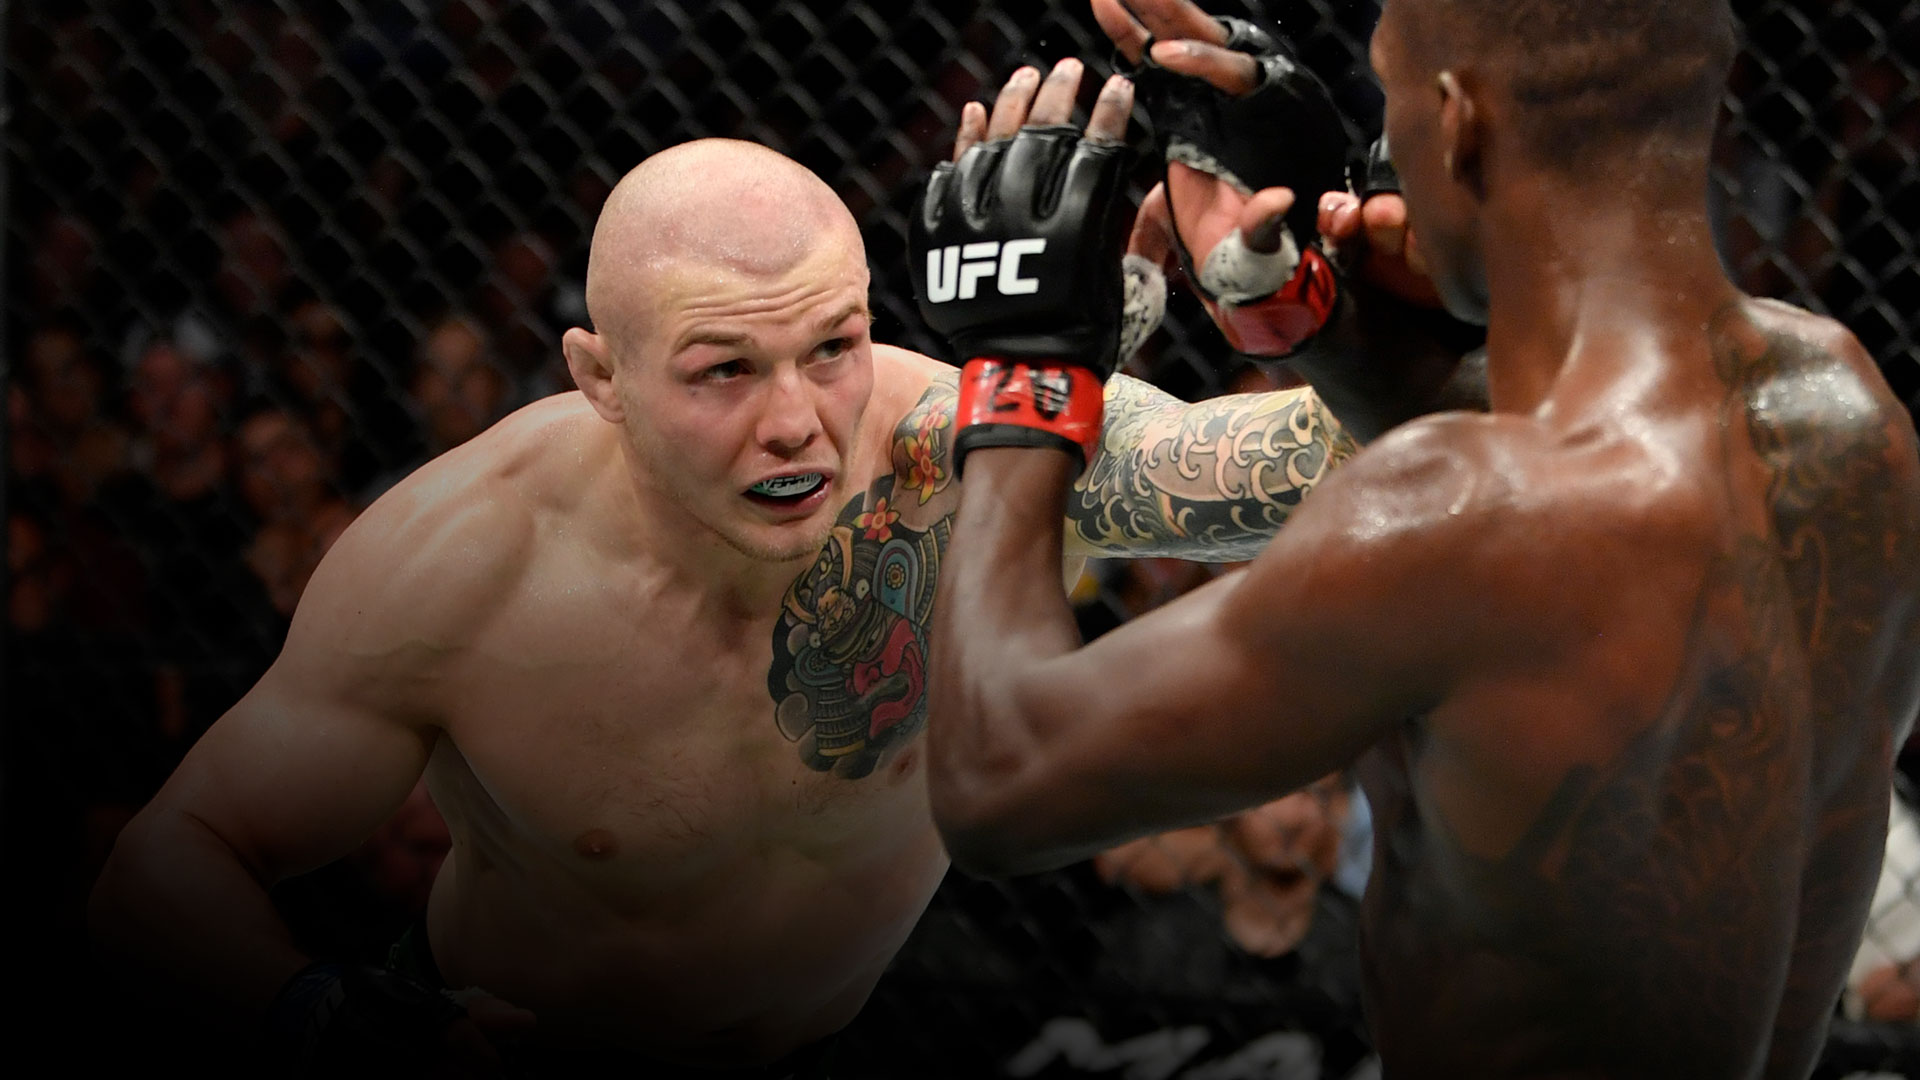 Marvin Vettori of Italy punches Israel Adesanya of Nigeria in their UFC middleweight championship fight during the UFC 263 event at Gila River Arena on June 12, 2021 in Glendale, Arizona. (Photo by Jeff Bottari/Zuffa LLC)